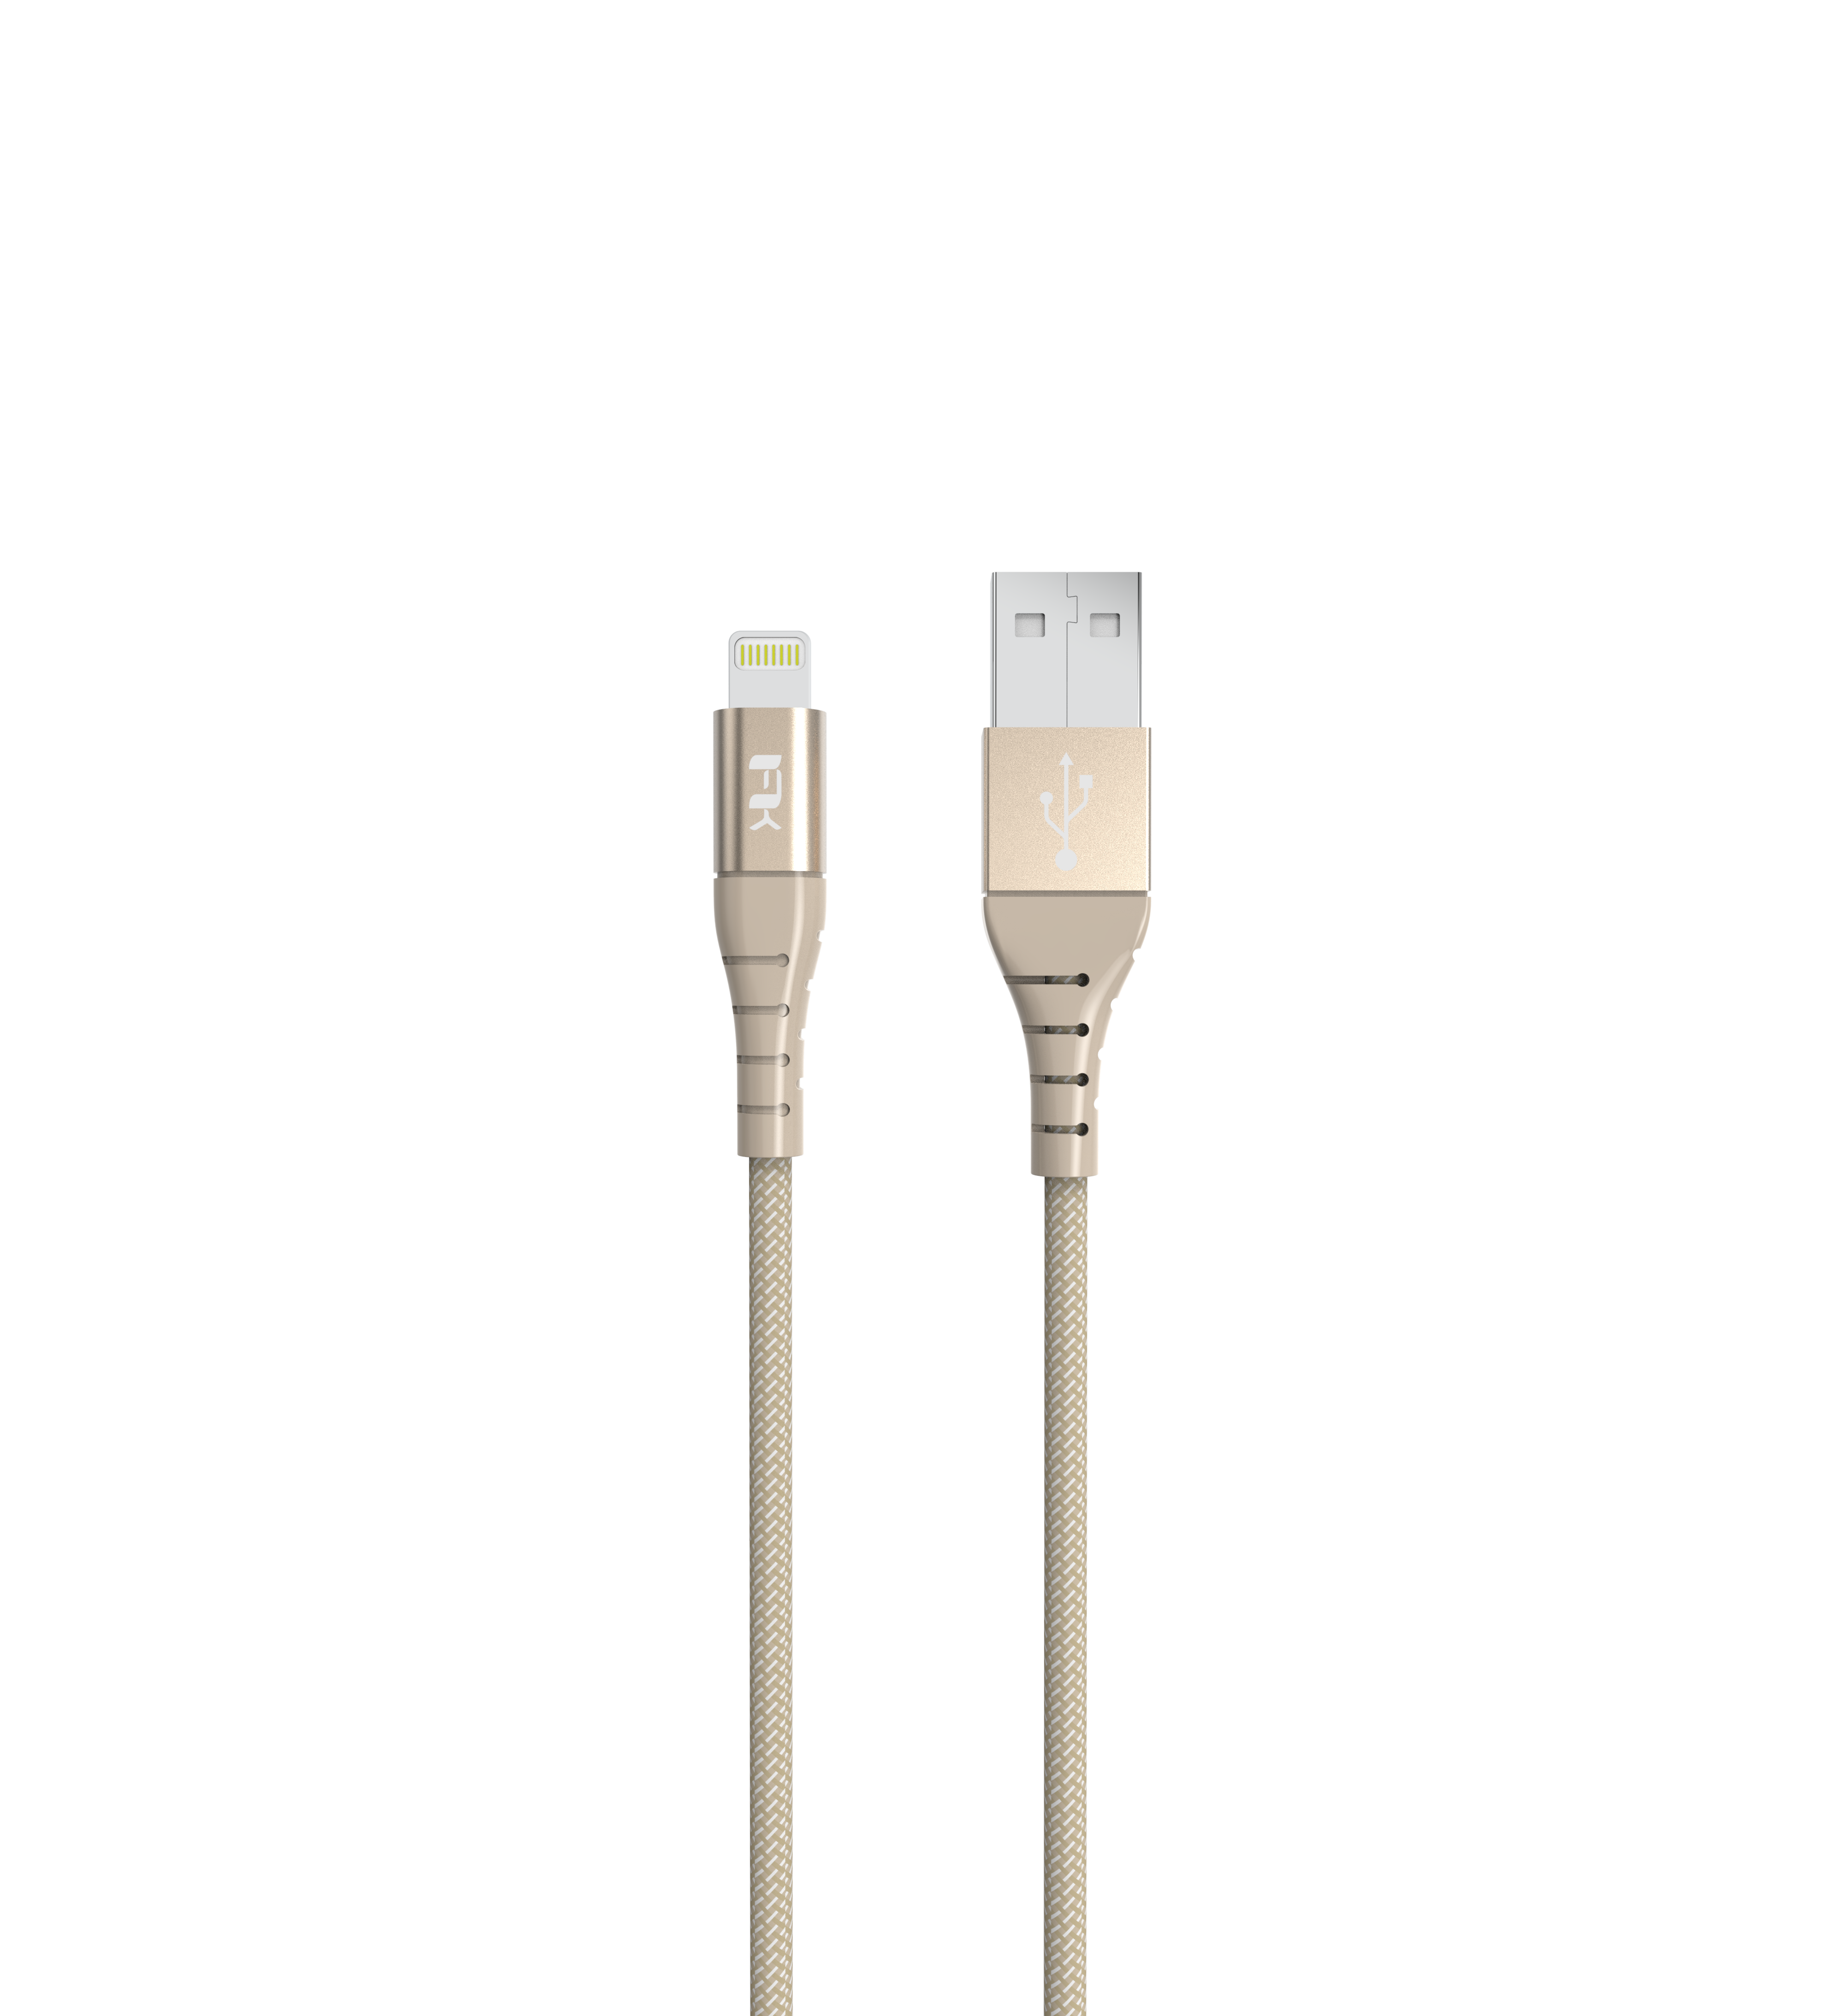 Dây Cáp Sạc USB Type A to Lightning Cho Iphone Feeltek 1m8 (Gold)